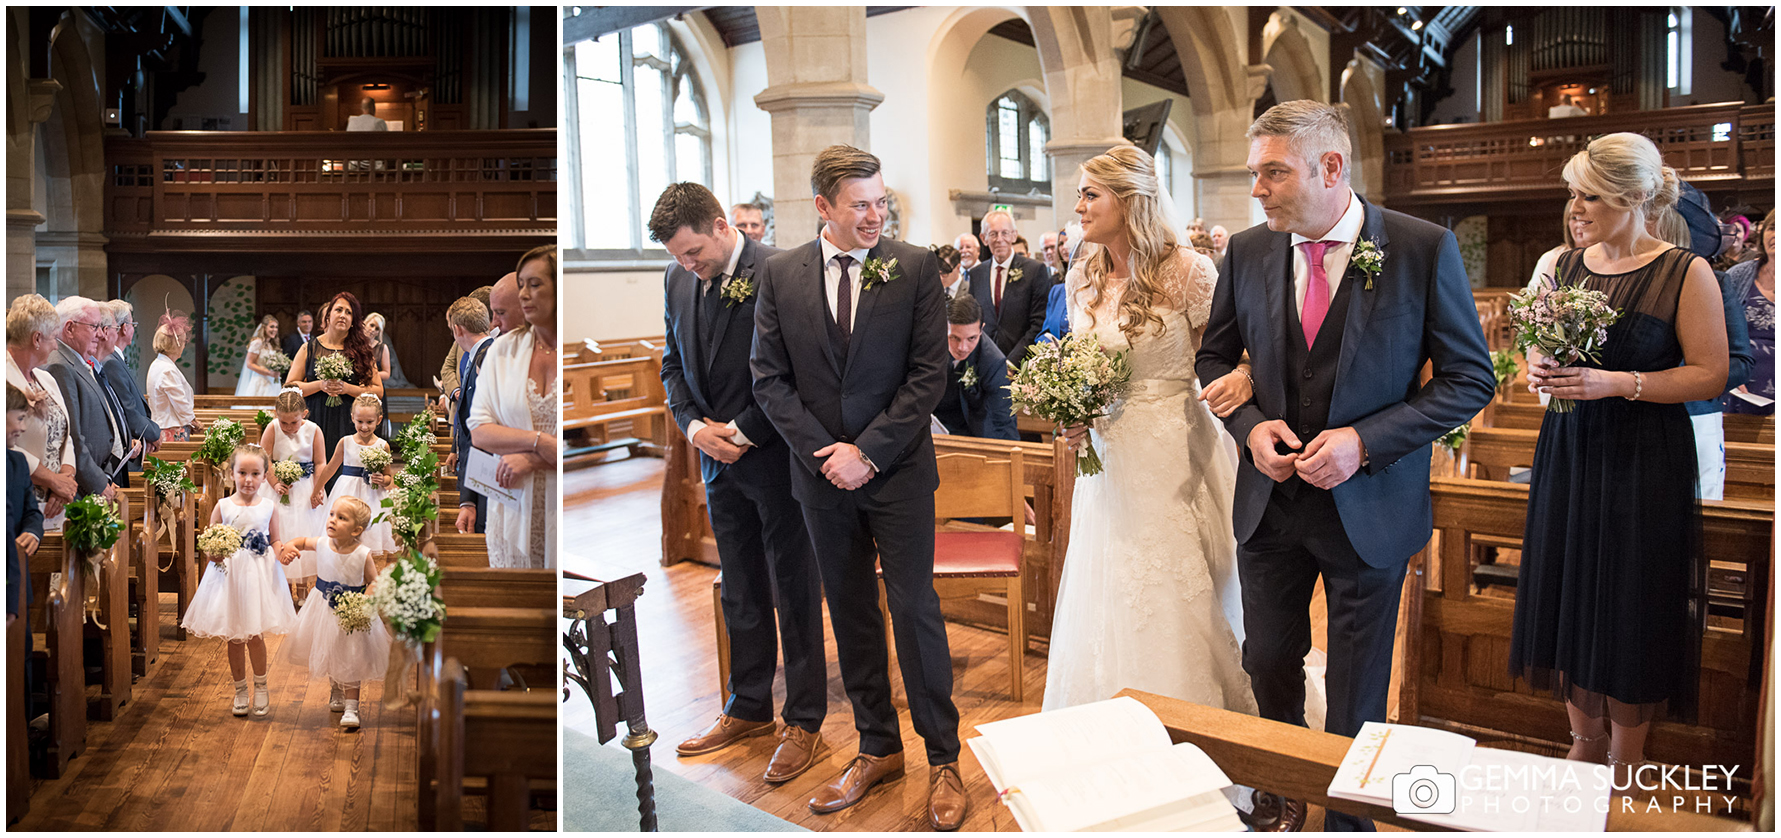 walking-down-the-aisle©gemmasuckleyphotography.jpg